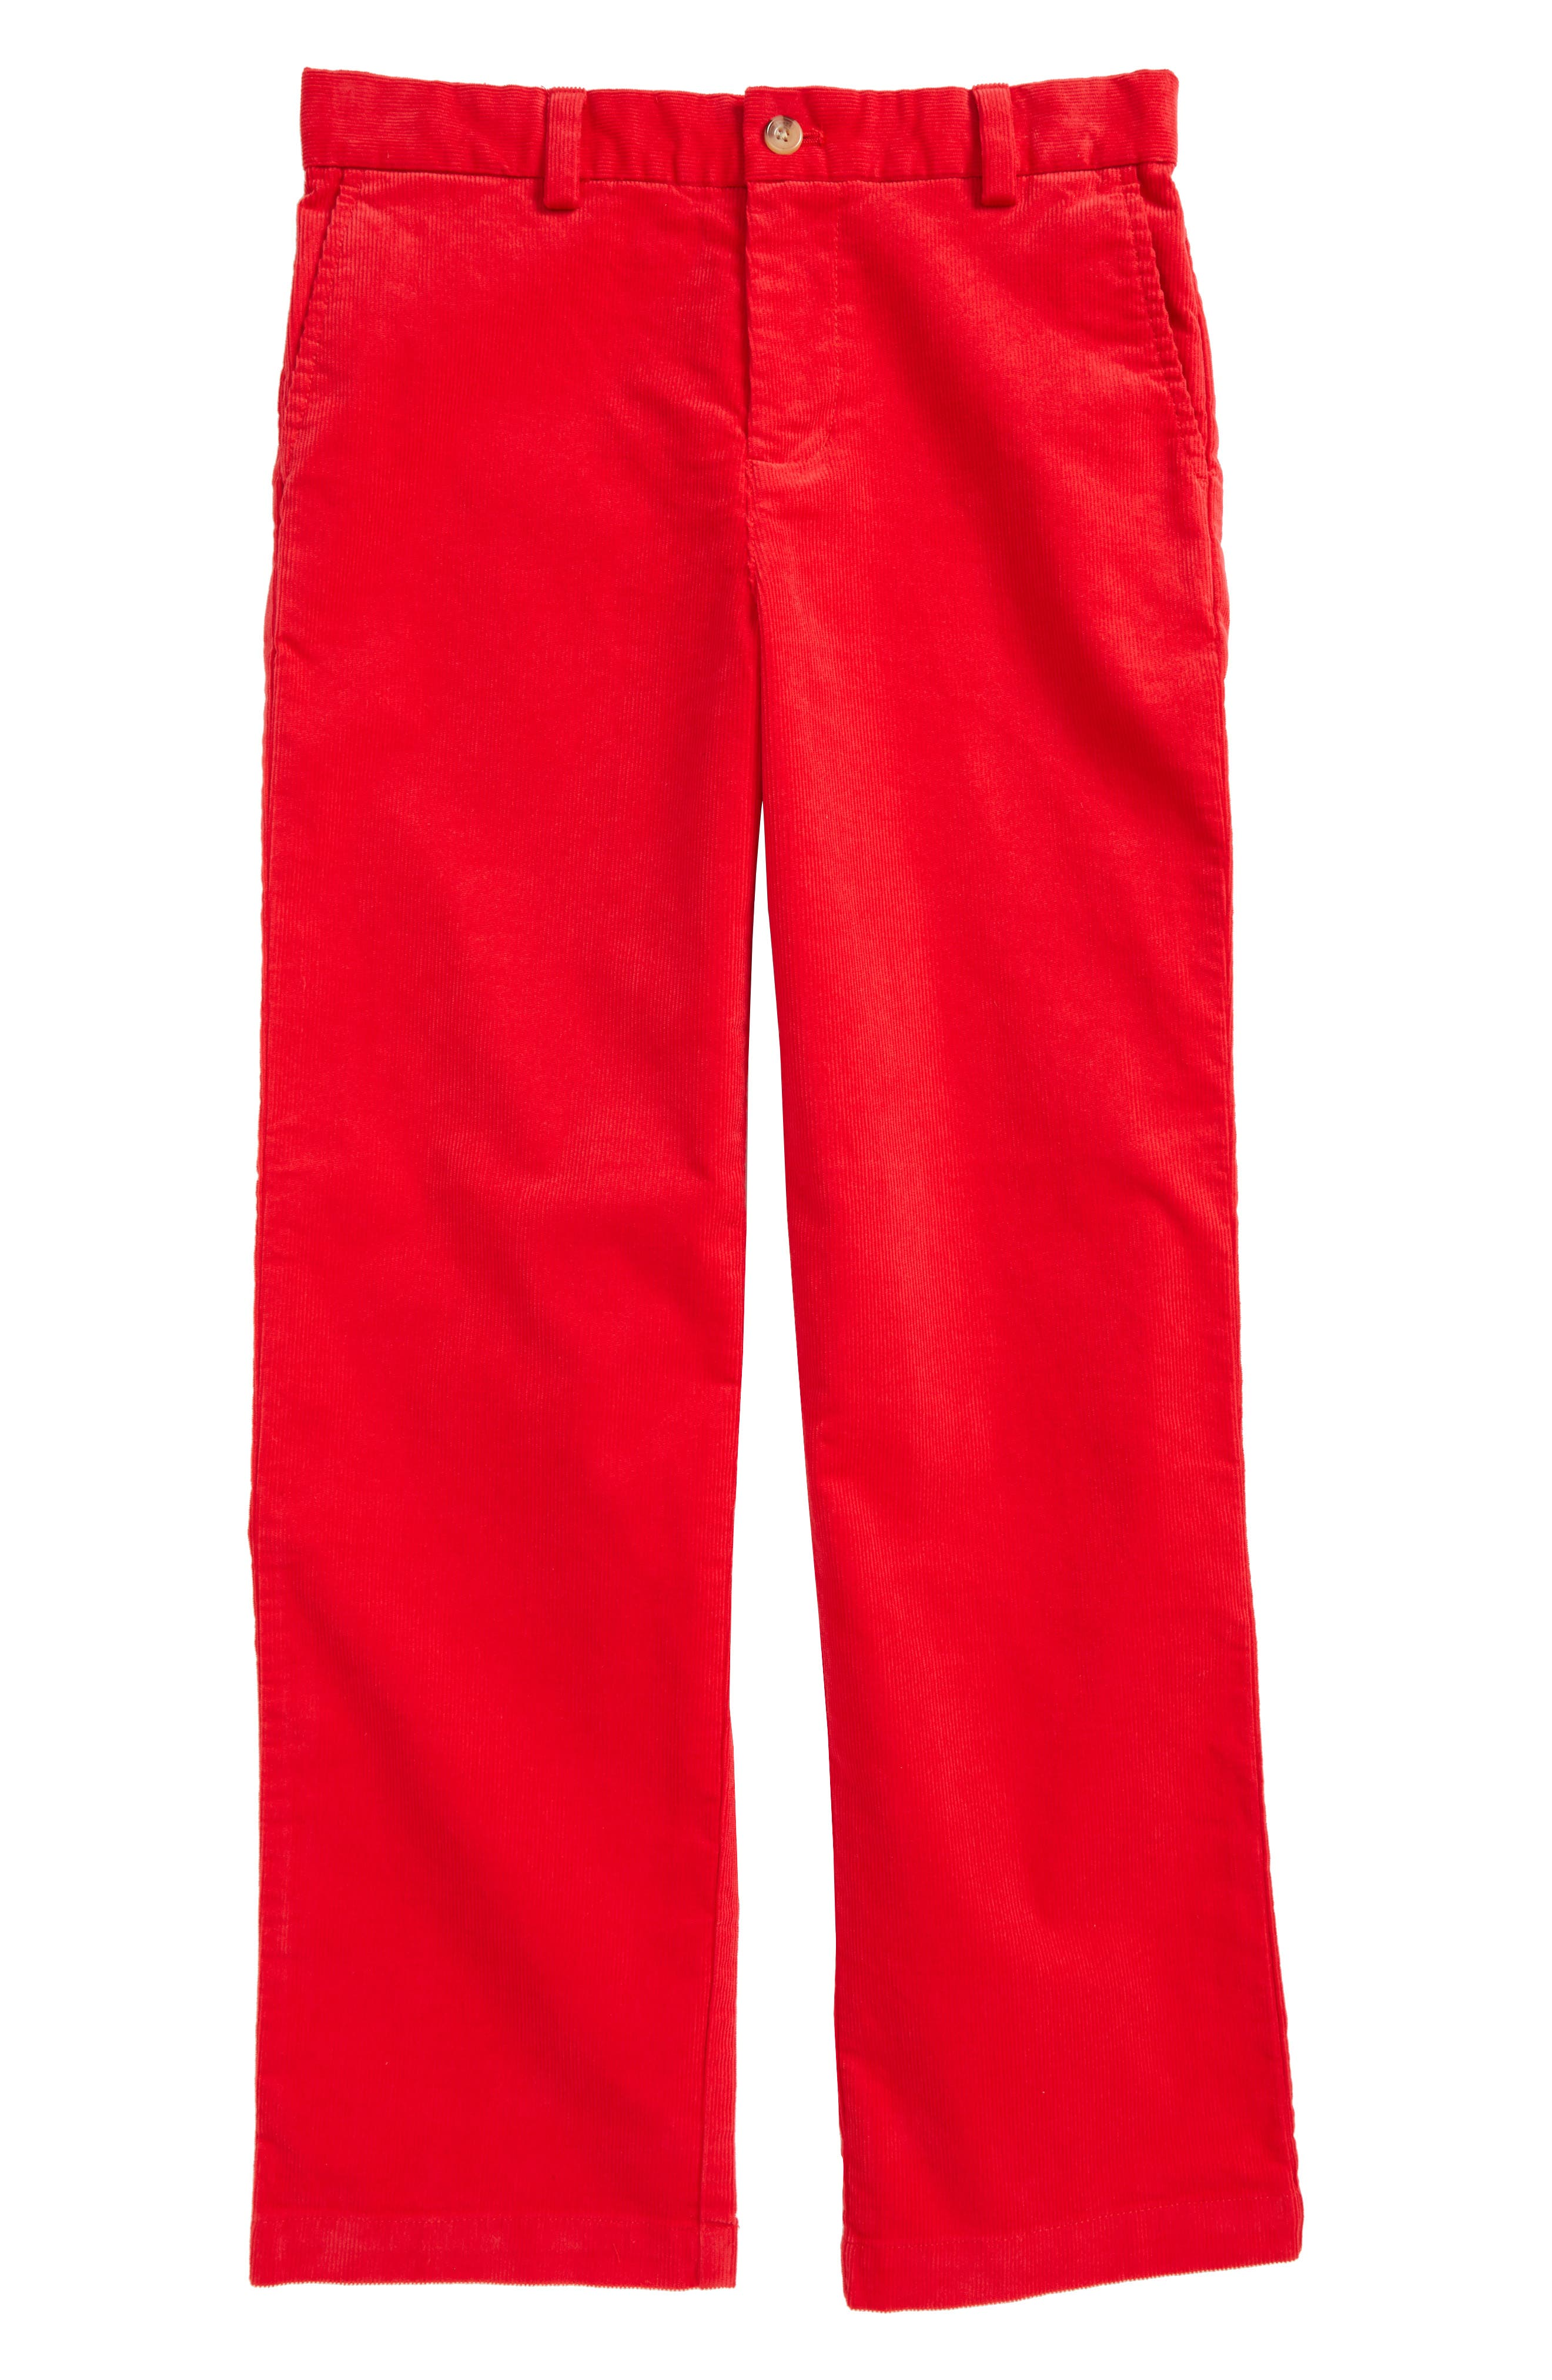 Breaker Corduroy Pants,                         Main,                         color, Lighthouse Red